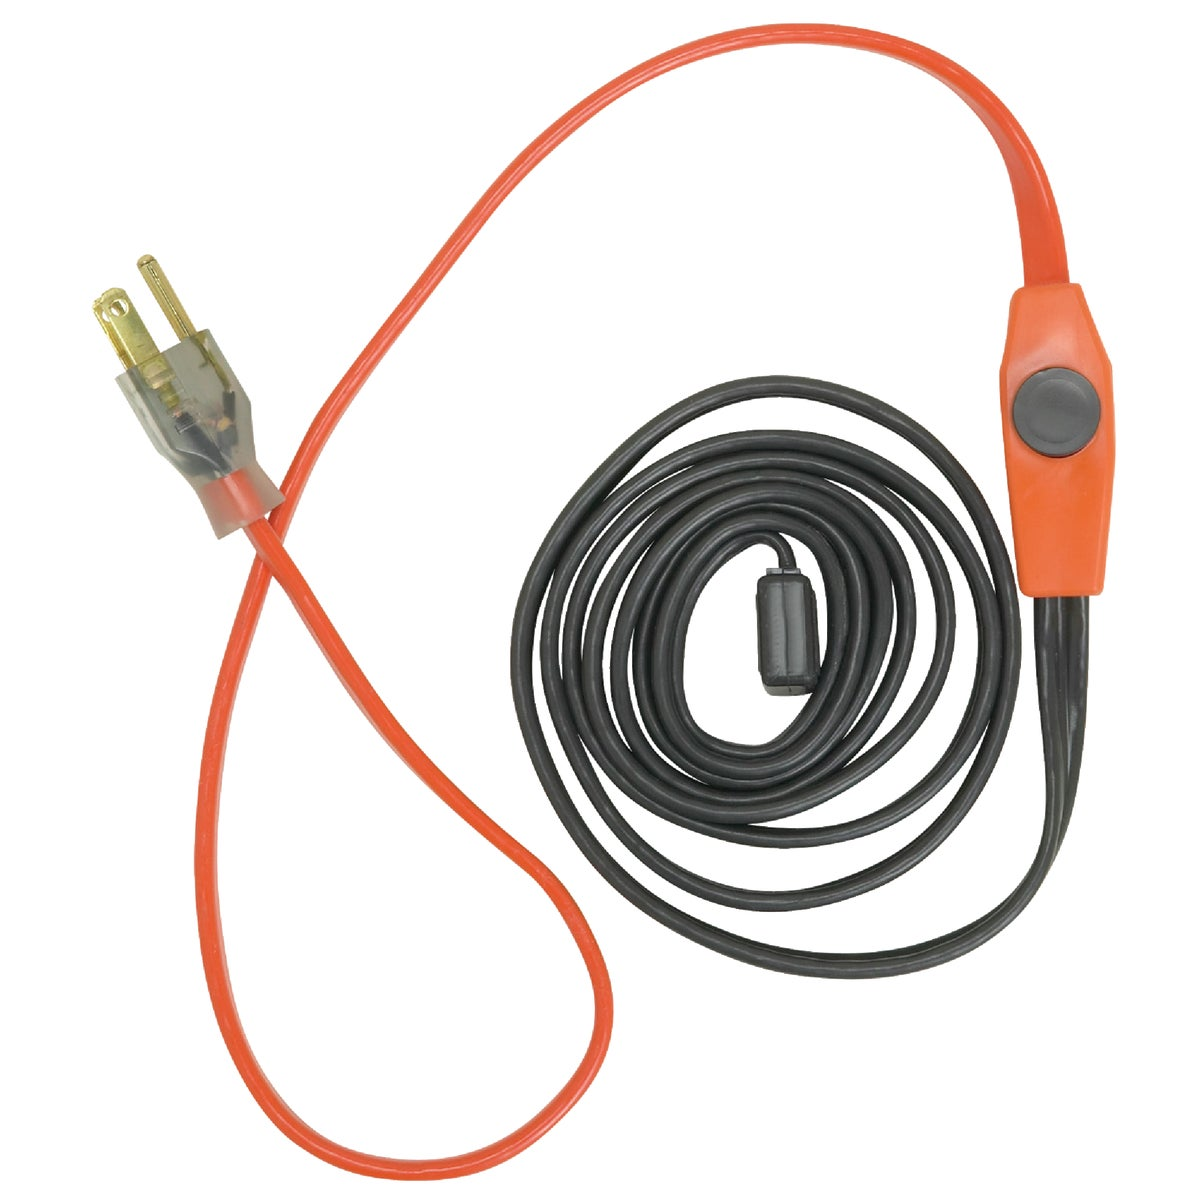 24' PIPE HEATING CABLE - AHB124 by Easy Heat Inc